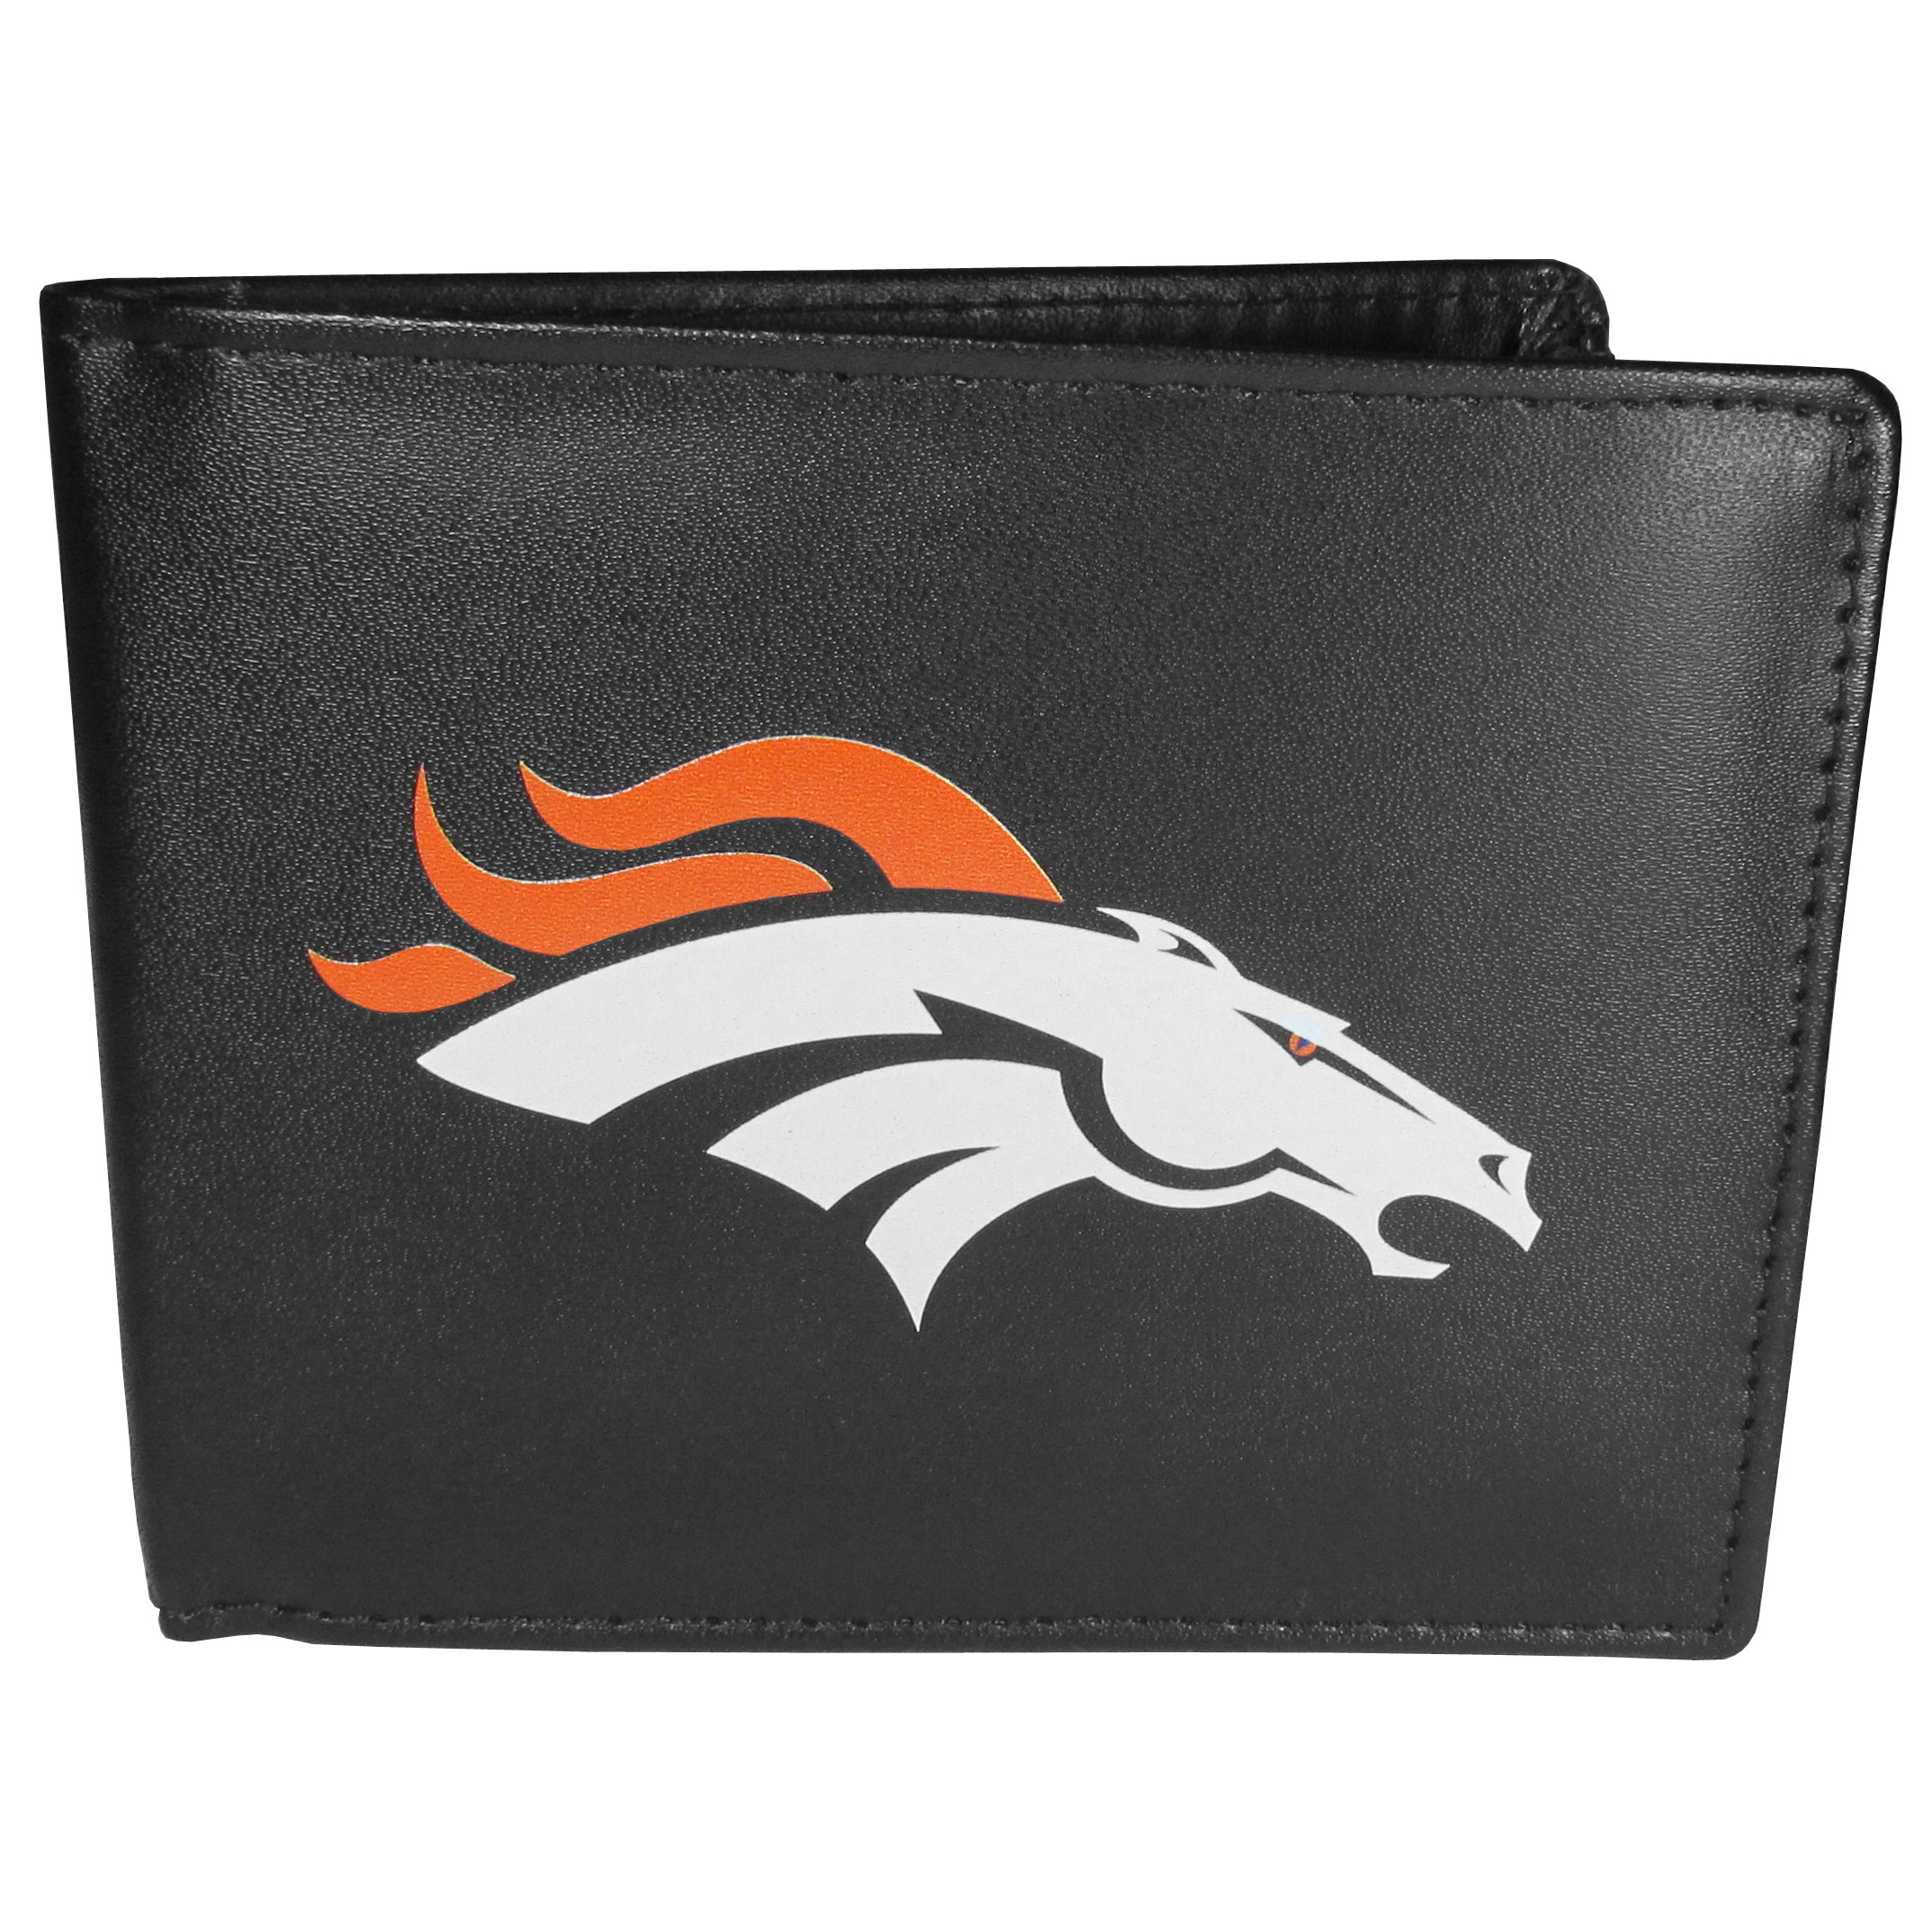 Denver Broncos Leather Bi-fold Wallet, Large Logo - Our classic fine leather bi-fold wallet is meticulously crafted with genuine leather that will age beautifully so you will have a quality wallet for years to come. The wallet opens to a large, billfold pocket and numerous credit card slots and has a convenient windowed ID slot. The front of the wallet features an extra large Denver Broncos printed logo.